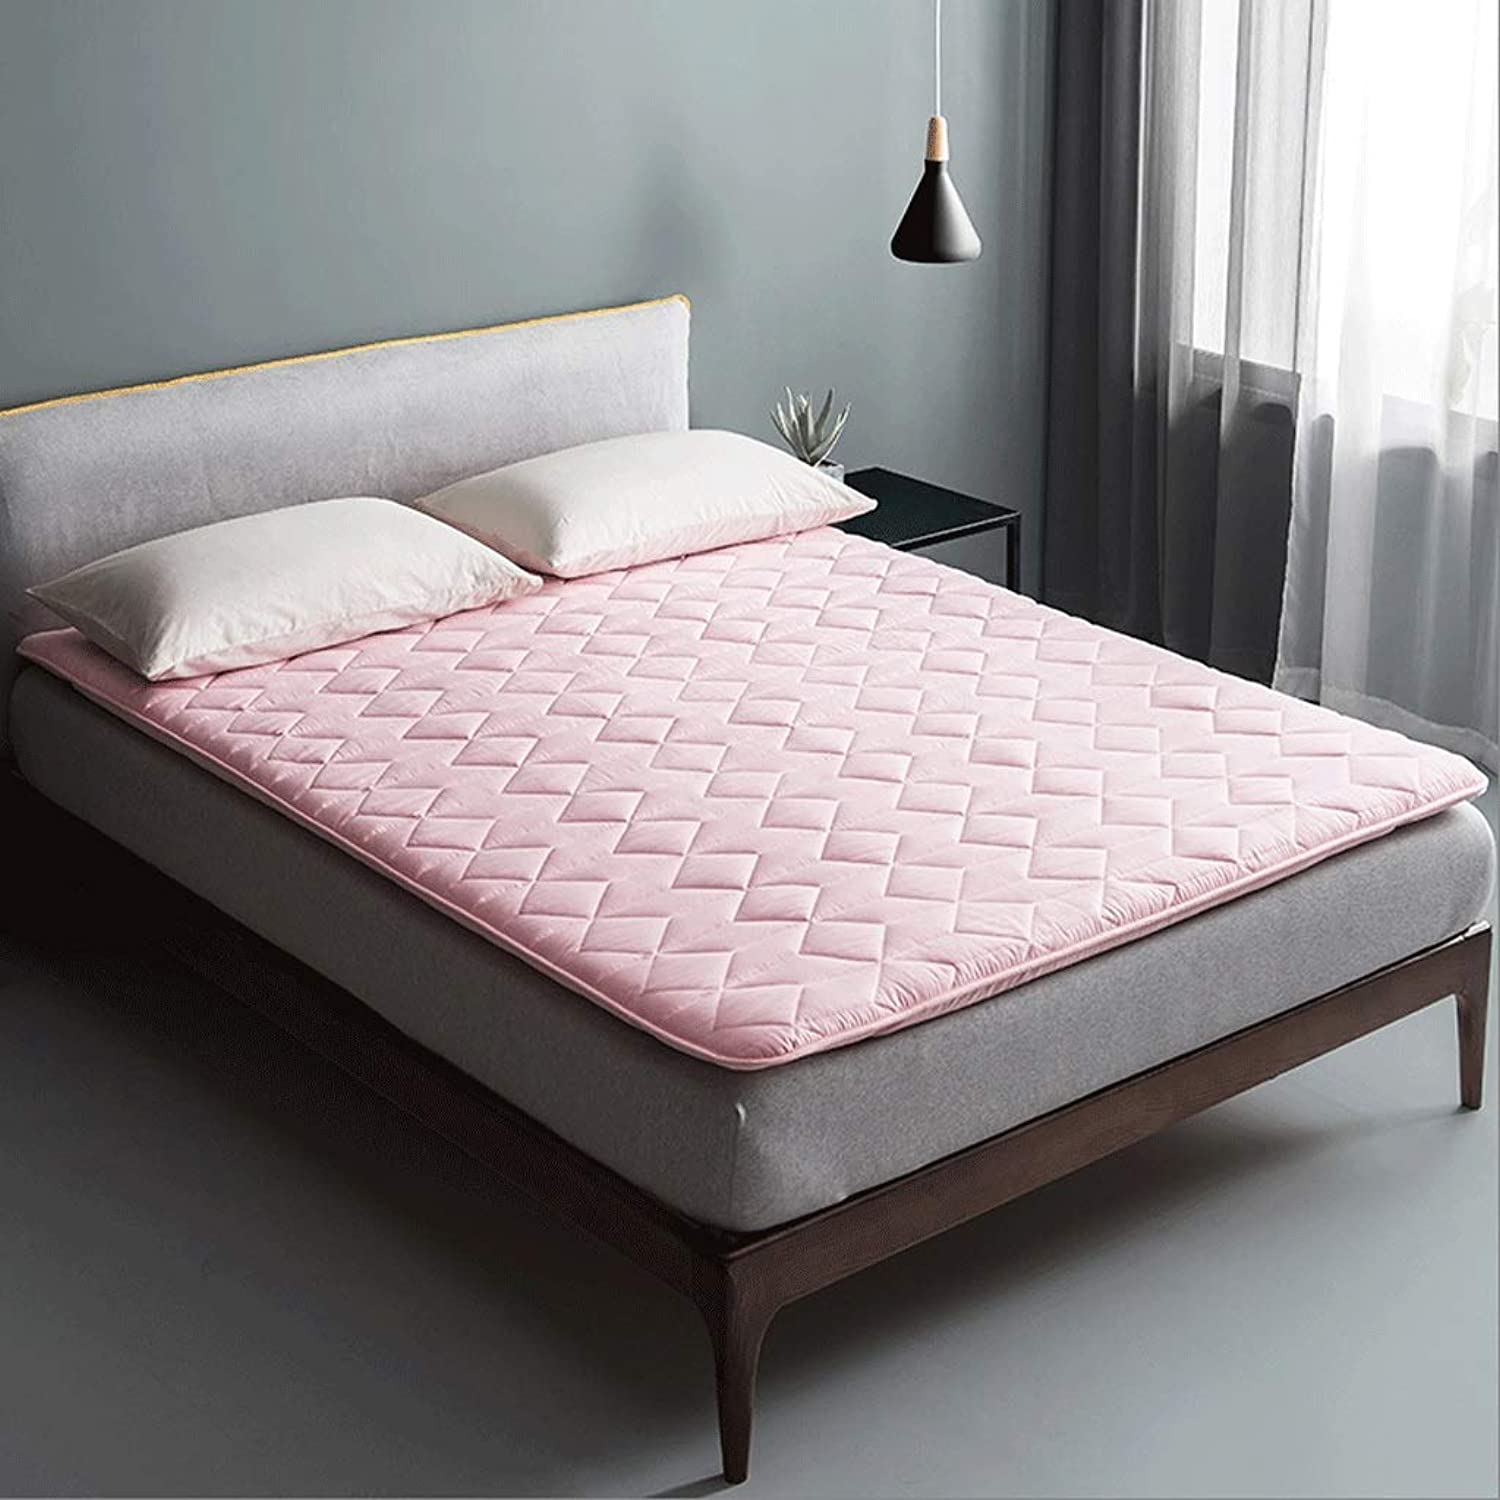 Cotton Mattress, Double Sponge Pad, Comfortable and Breathable Foldable Cushion (color   D, Size   90x190cm)